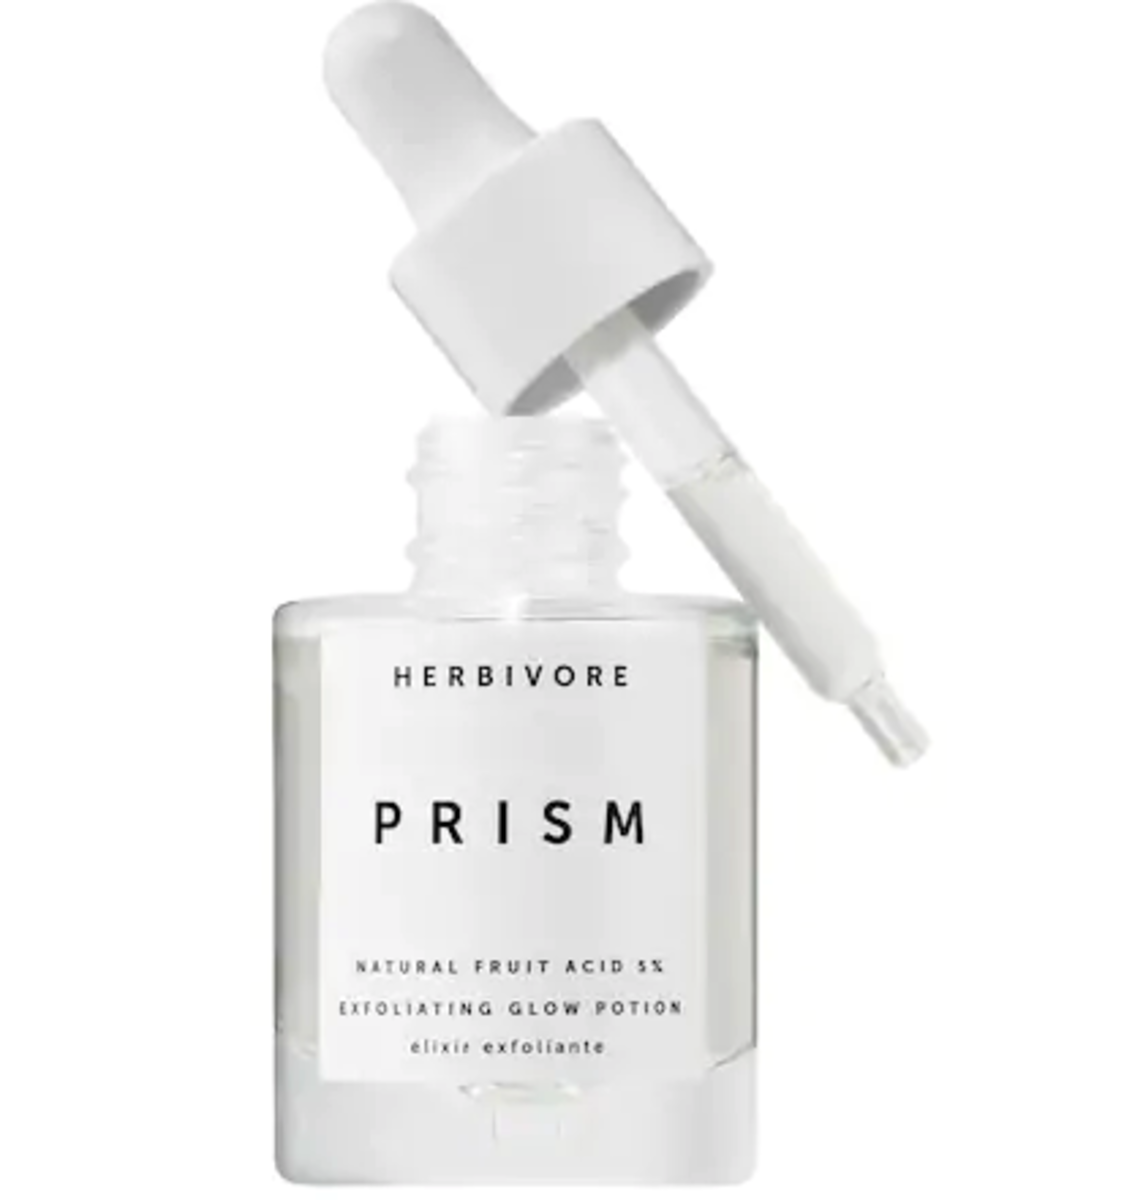 Herbivore Prism Exfoliating Glow Potion, $62, available here.